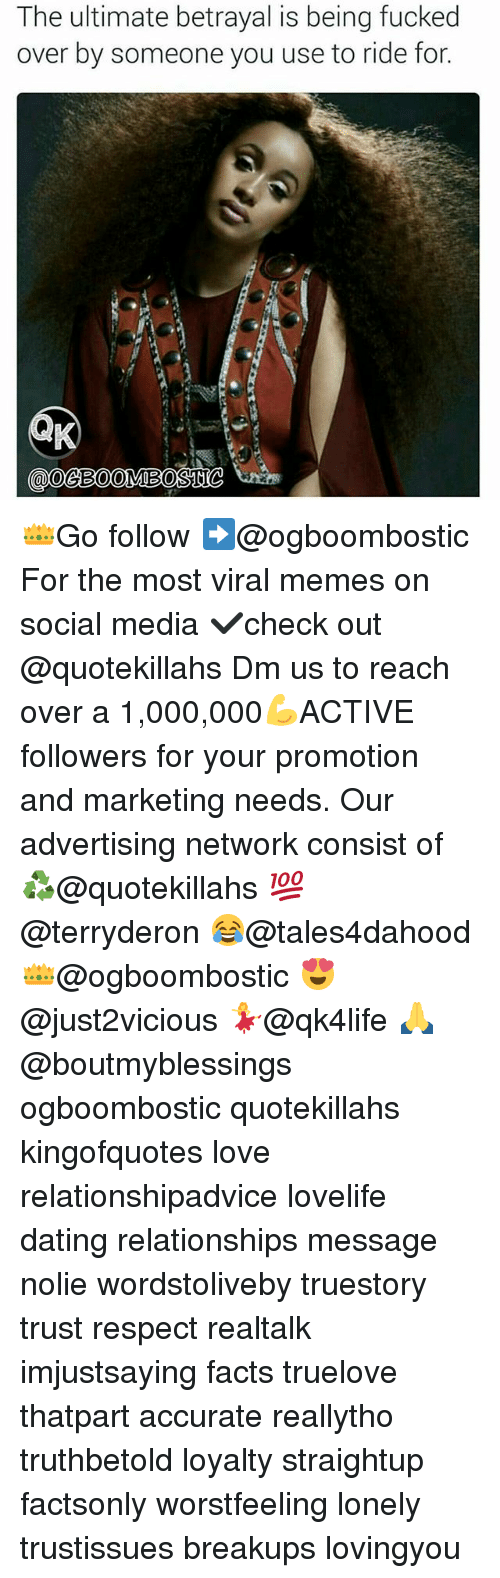 Memes, 🤖, and Media: The ultimate betrayal is being fucked  over by someone you use to ride for. 👑Go follow ➡@ogboombostic For the most viral memes on social media ✔check out @quotekillahs Dm us to reach over a 1,000,000💪ACTIVE followers for your promotion and marketing needs. Our advertising network consist of ♻@quotekillahs 💯@terryderon 😂@tales4dahood 👑@ogboombostic 😍@just2vicious 💃@qk4life 🙏@boutmyblessings ogboombostic quotekillahs kingofquotes love relationshipadvice lovelife dating relationships message nolie wordstoliveby truestory trust respect realtalk imjustsaying facts truelove thatpart accurate reallytho truthbetold loyalty straightup factsonly worstfeeling lonely trustissues breakups lovingyou